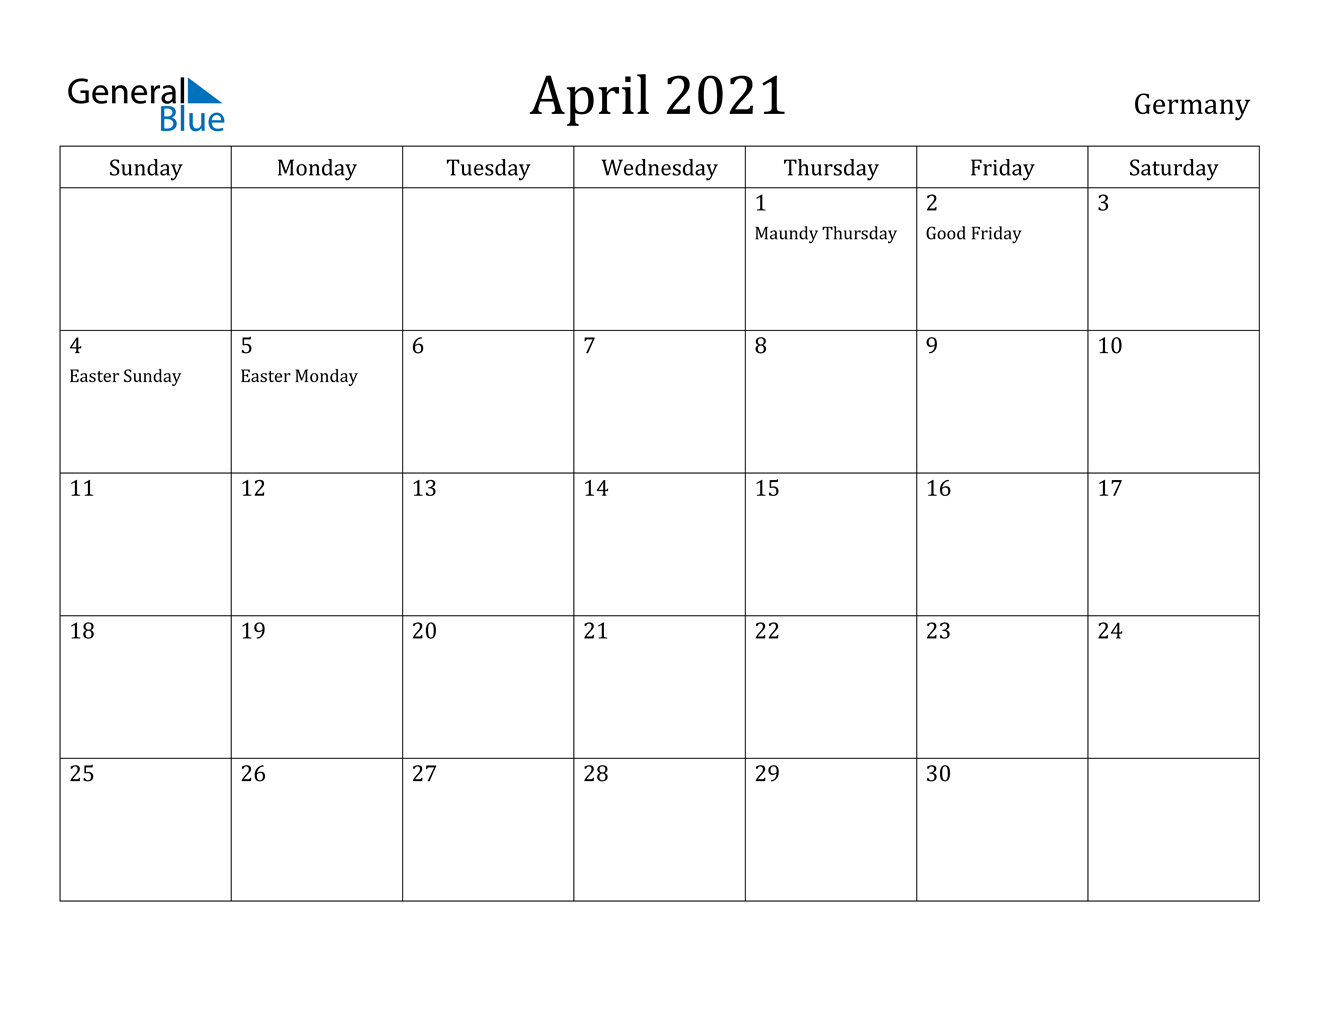 April 2021 Calendar - Germany